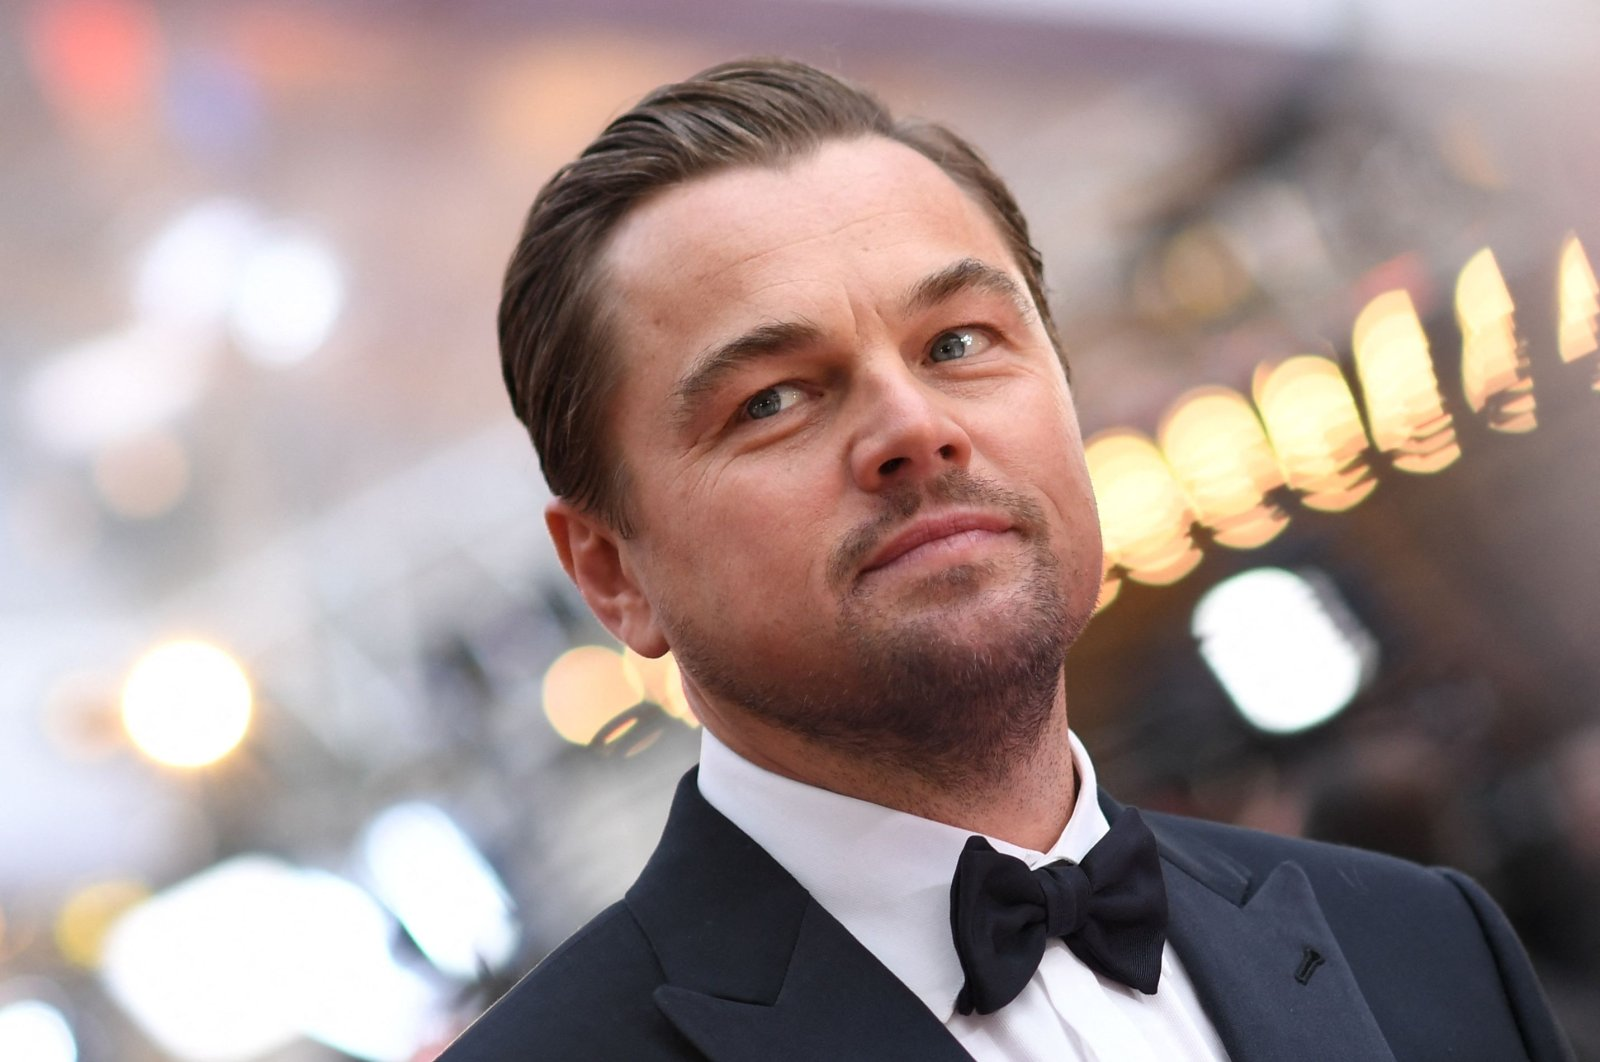 In this file photo, U.S. actor Leonardo DiCaprio arrives for the 92nd Oscars at the Dolby Theatre in Hollywood, California, U.S., on Feb. 9, 2020. (AFP Photo)